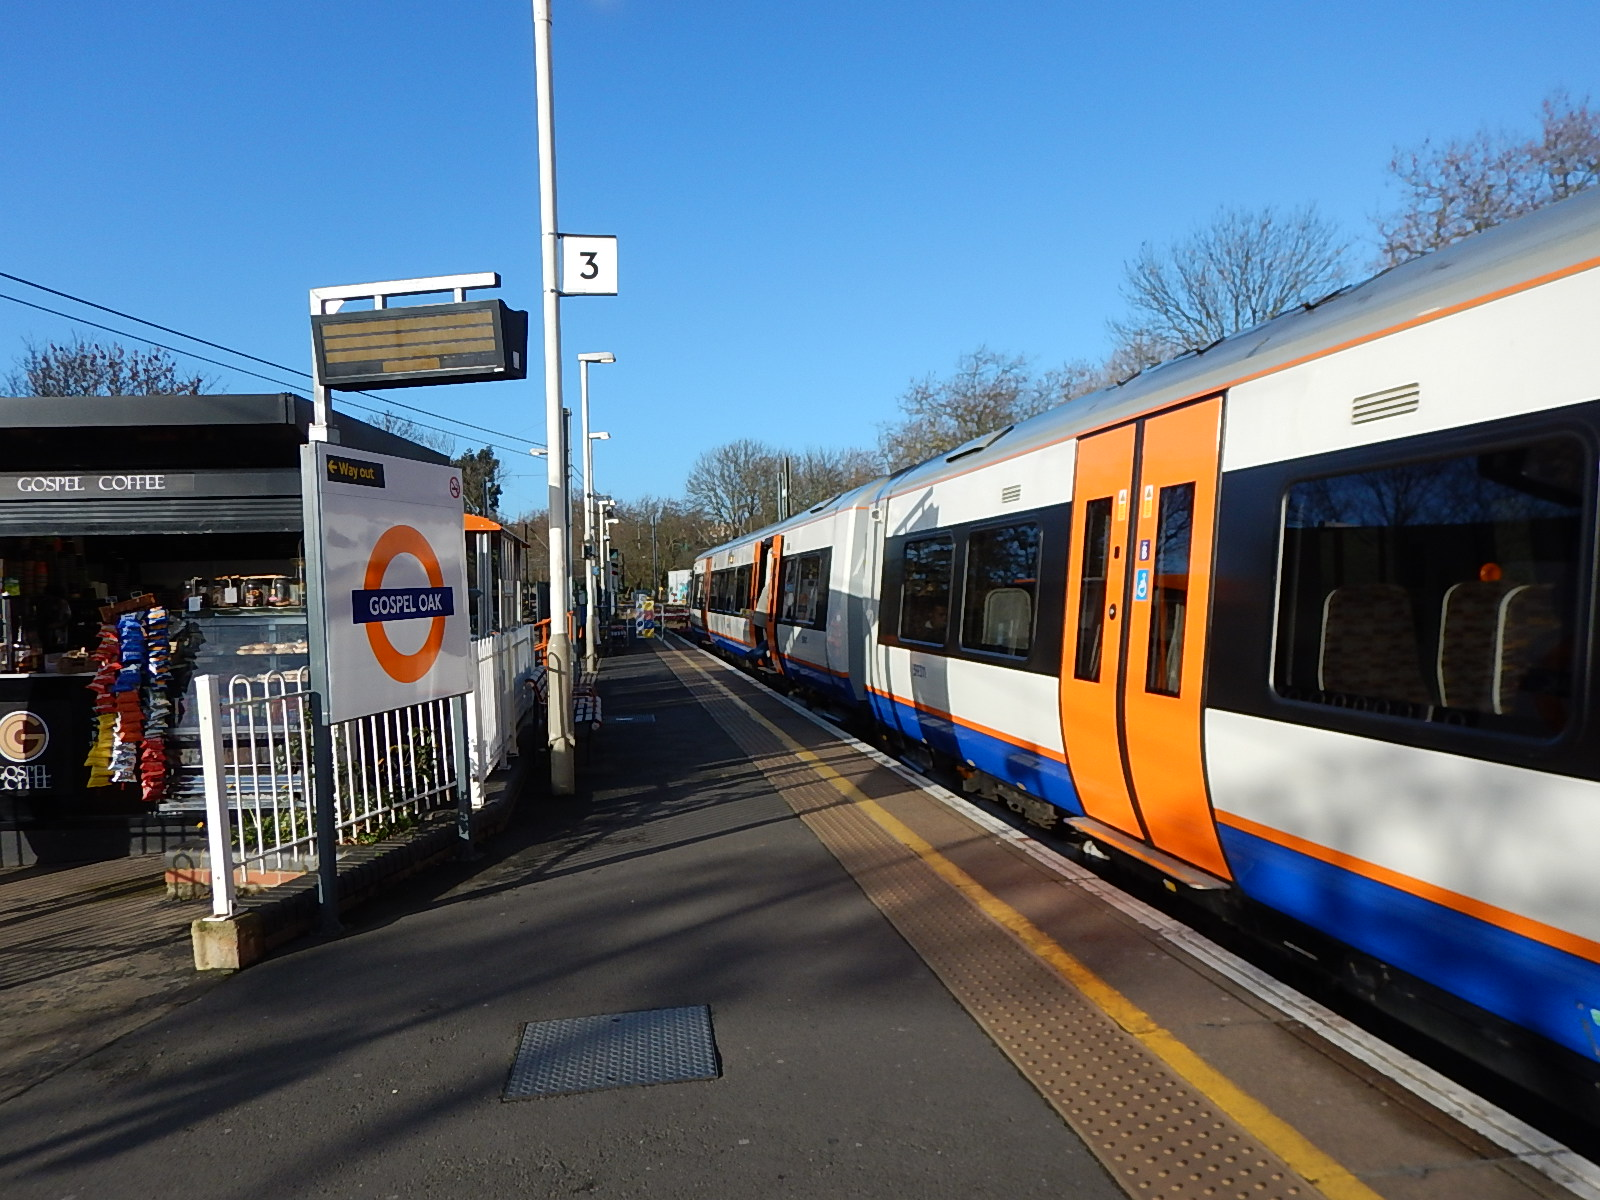 Work starts at gospel oak station 171 the anonymous widower